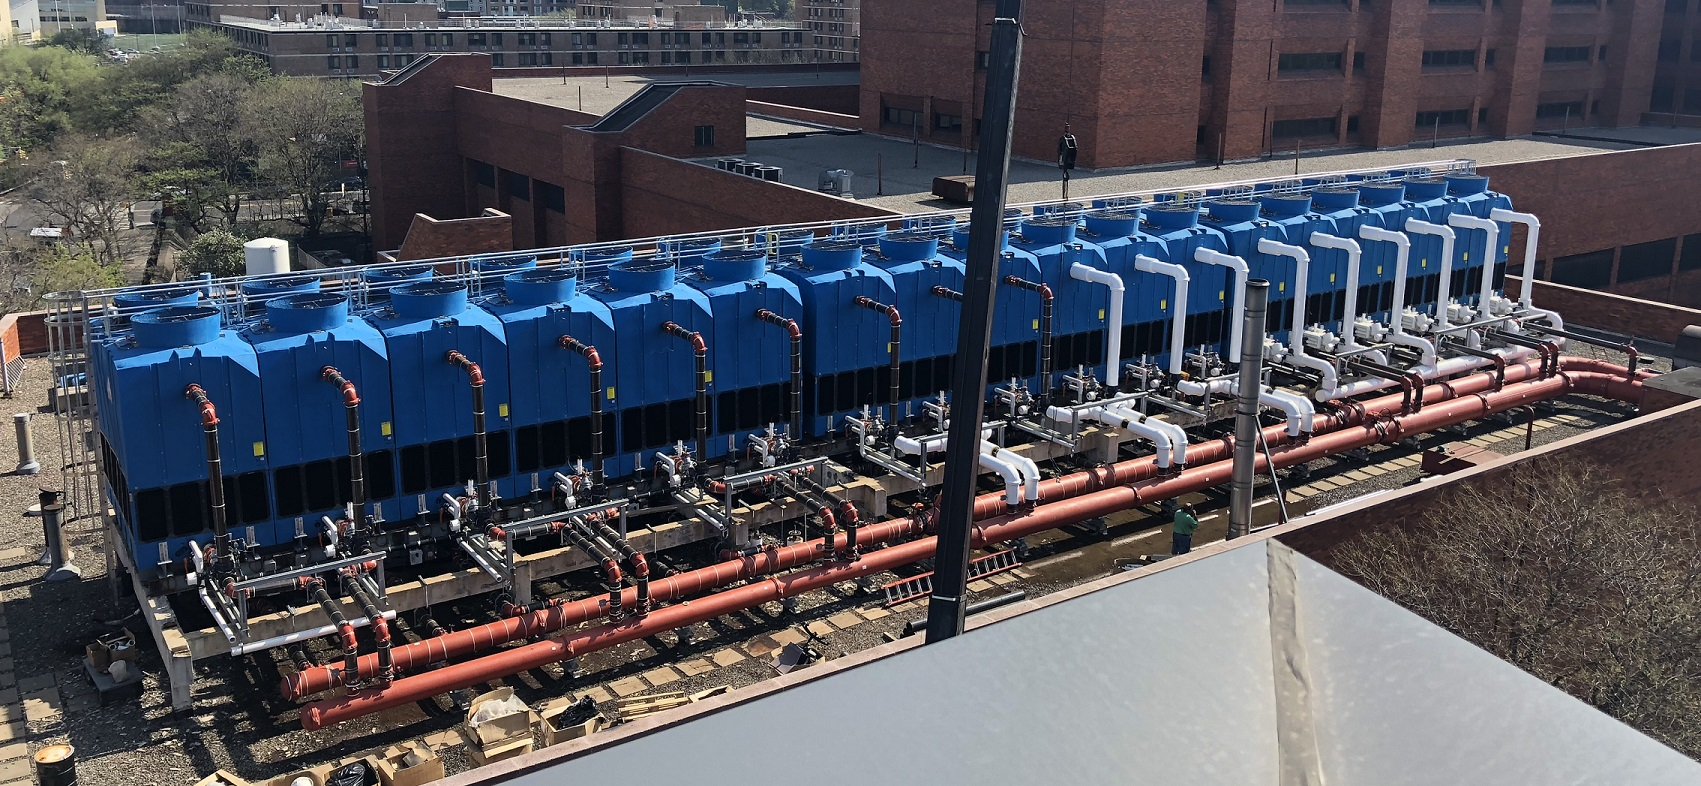 ighteen TM Series Anti-Microbial Cooling Towers lined up in a row on the roof of a hospital in NY. Buildings are in the background.